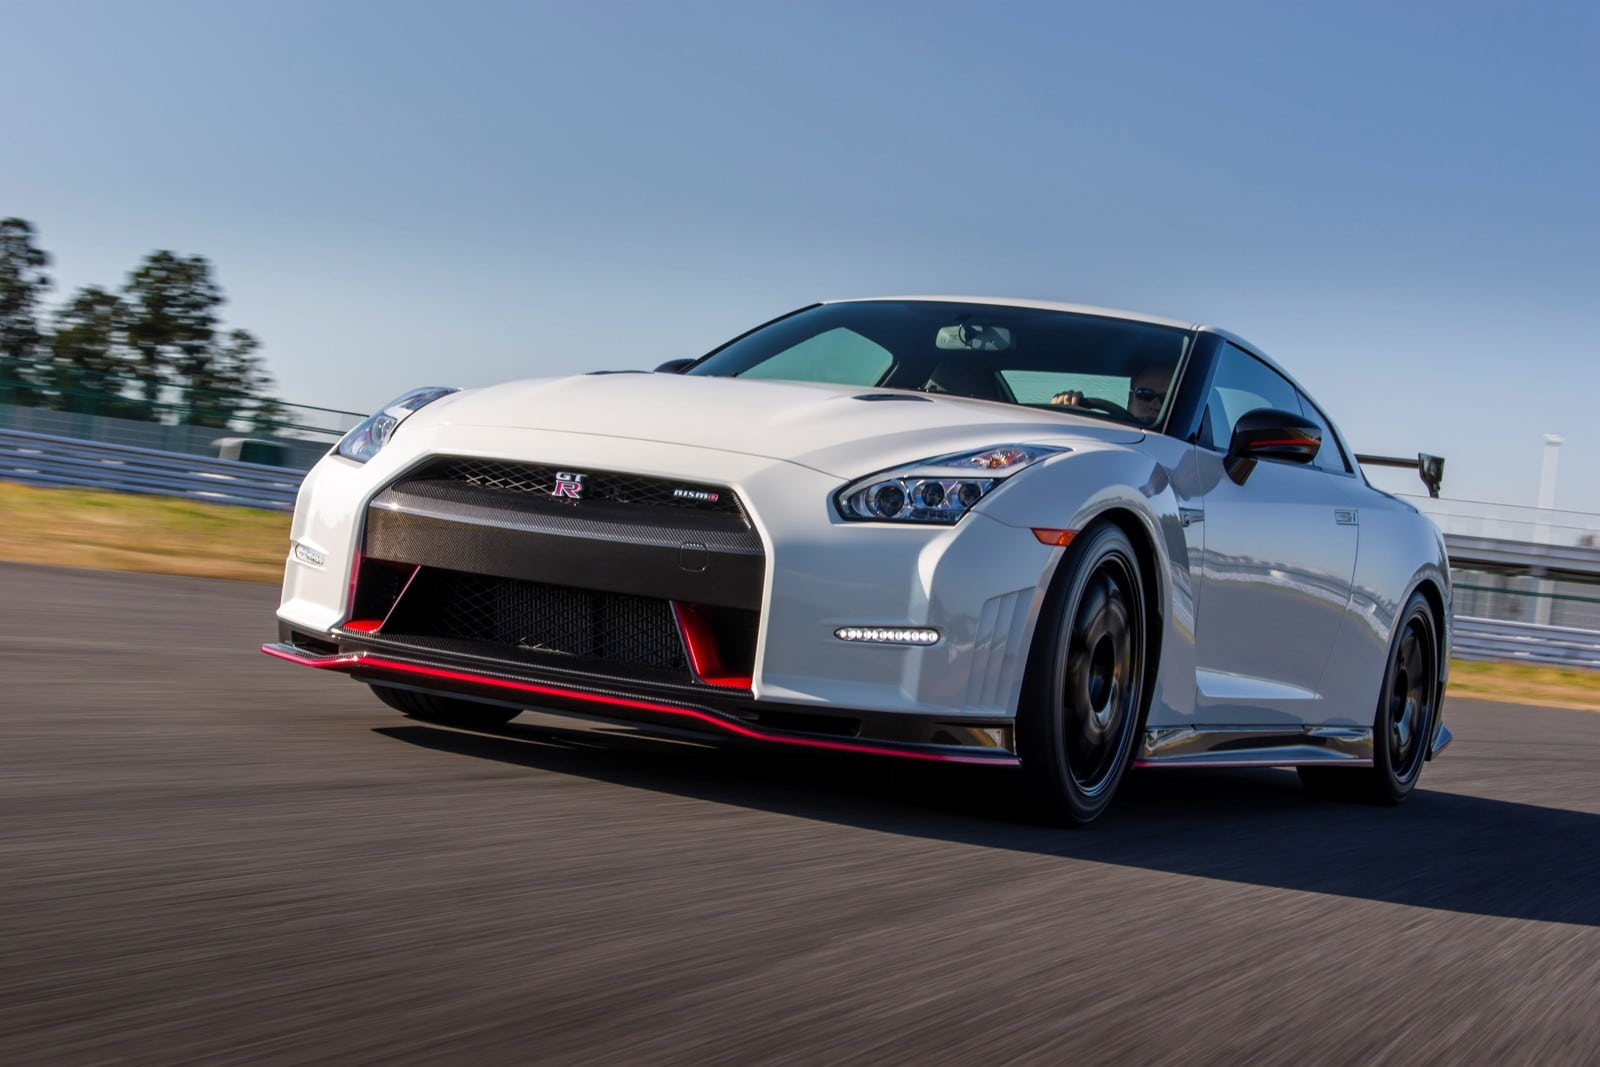 nissan gtr nismo prix et commercialisation connus. Black Bedroom Furniture Sets. Home Design Ideas